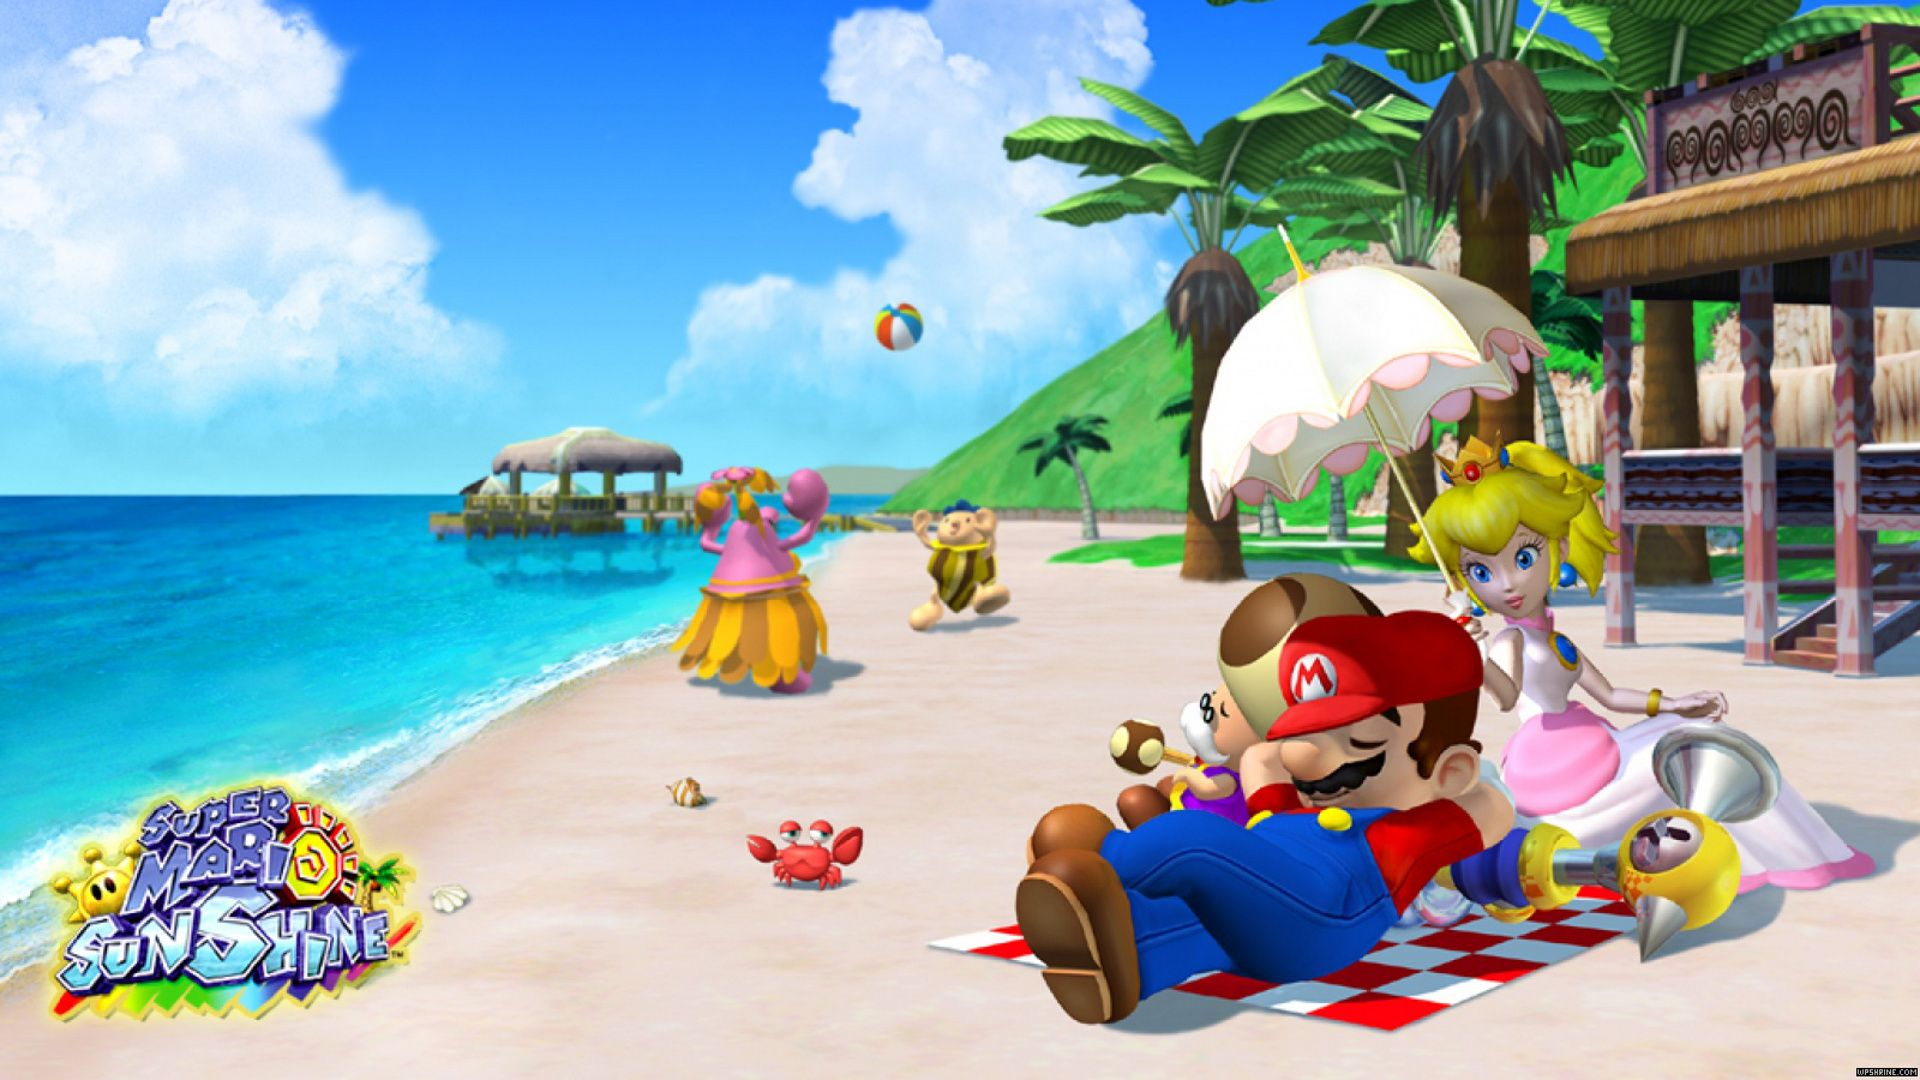 4 Super Mario Sunshine Hd Wallpapers Backgrounds Wallpaper Abyss Super Mario Sunshine Super Mario Bros Mario Bros